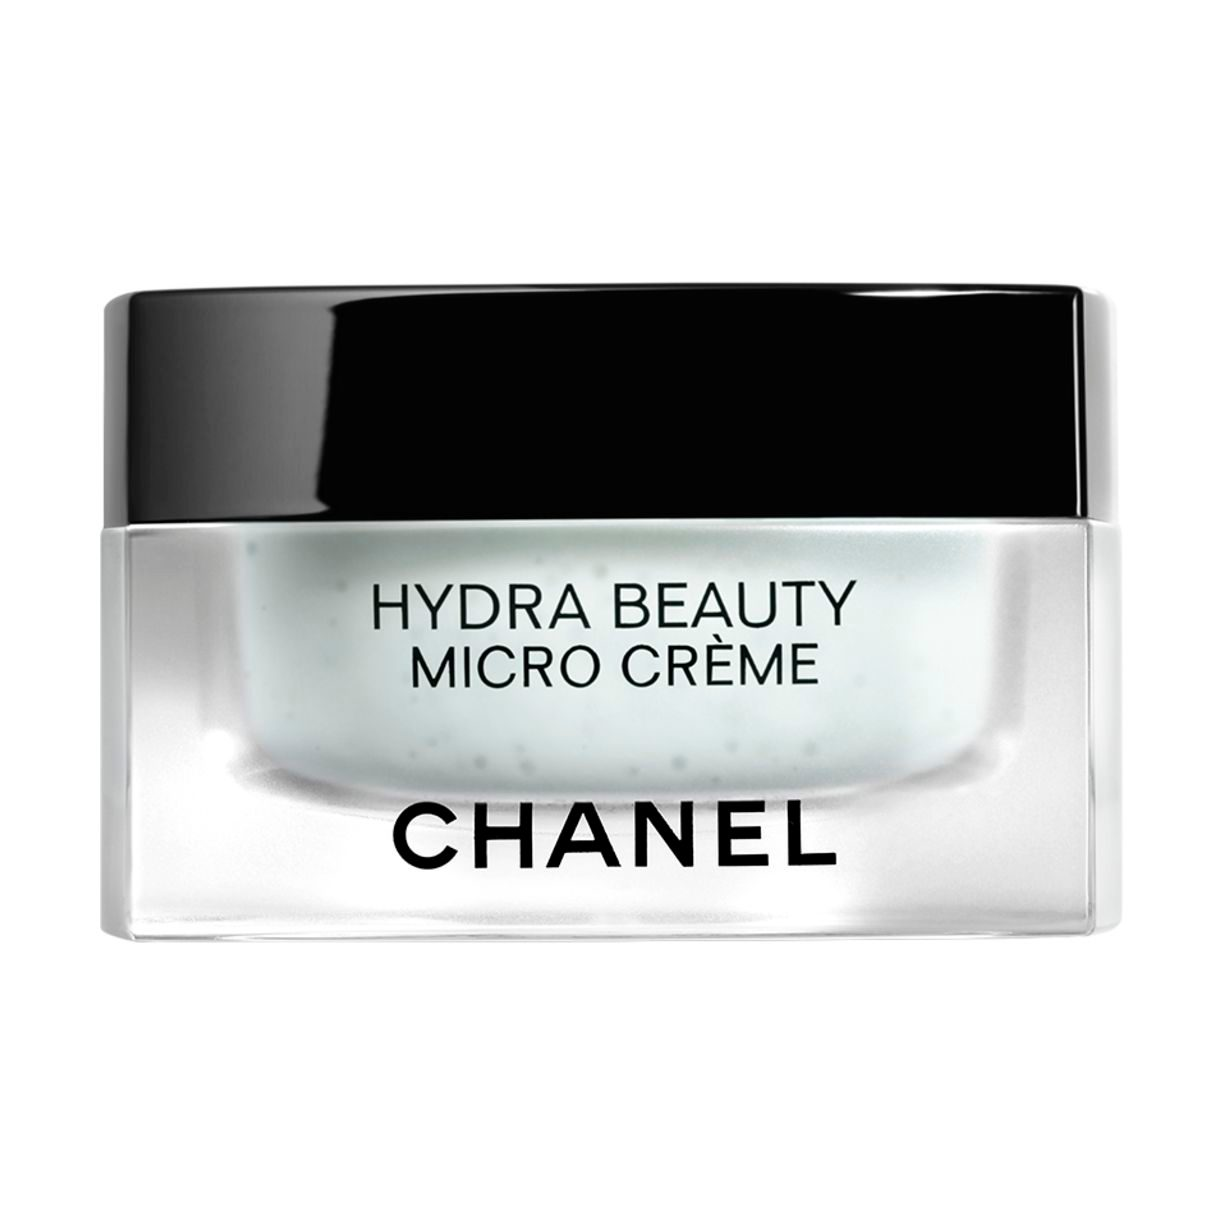 HYDRA BEAUTY MICRO CRÈME FORTIFYING REPLENISHING HYDRATION JAR 50G